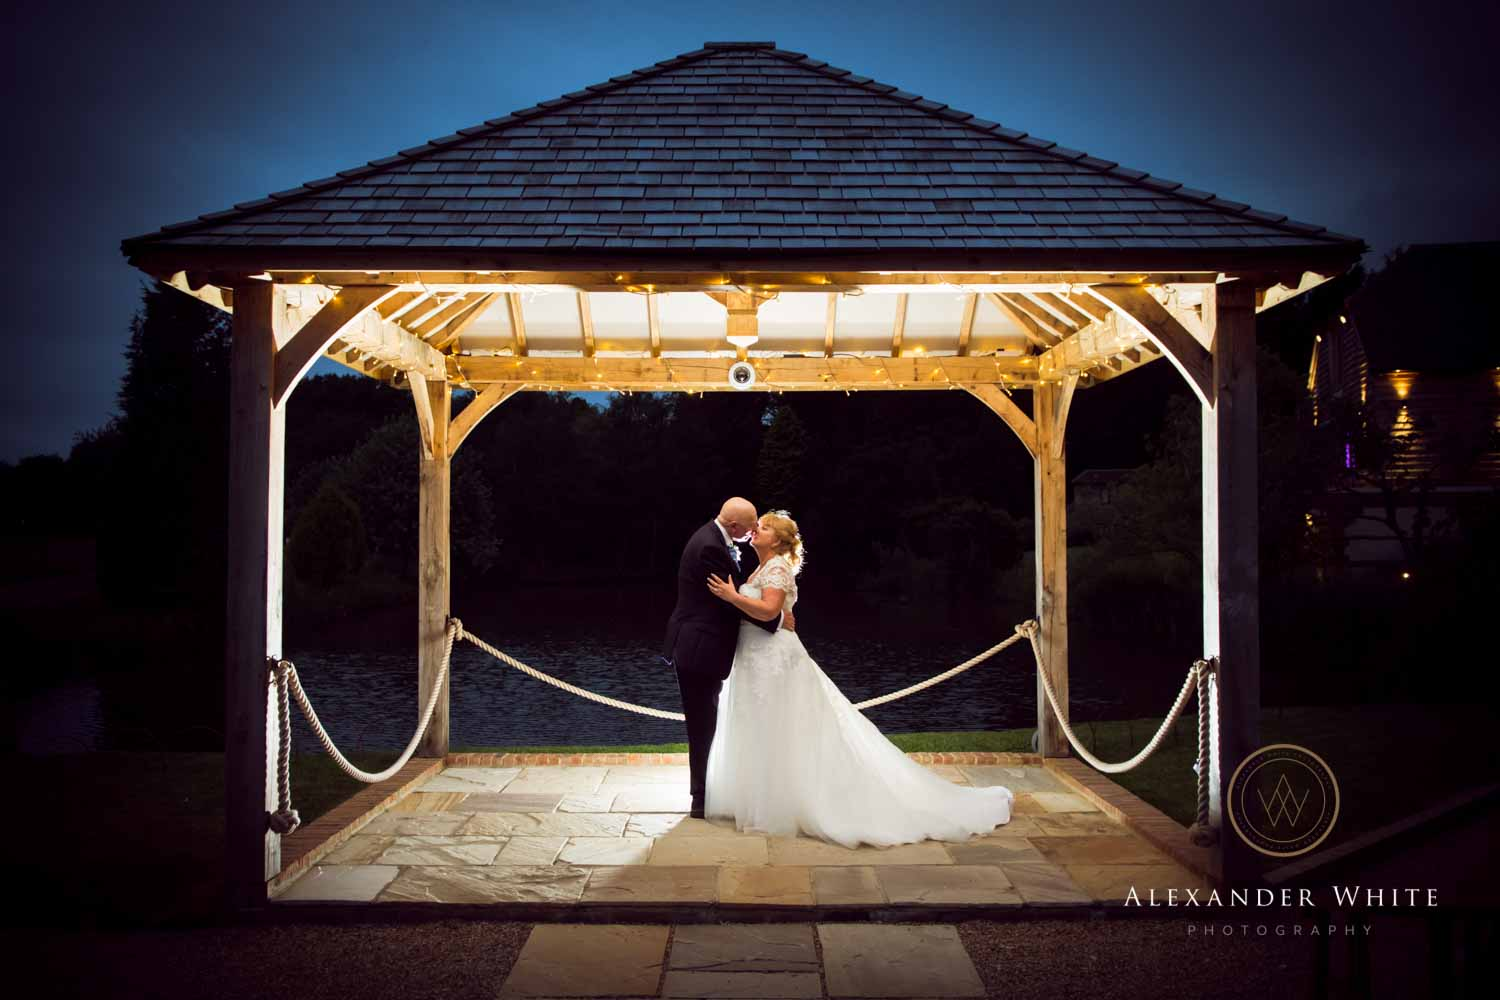 Brookfield Barn outdoor wedding venue in Horsham West Sussex Wedding photo of couple backlit under a shelter at dusk